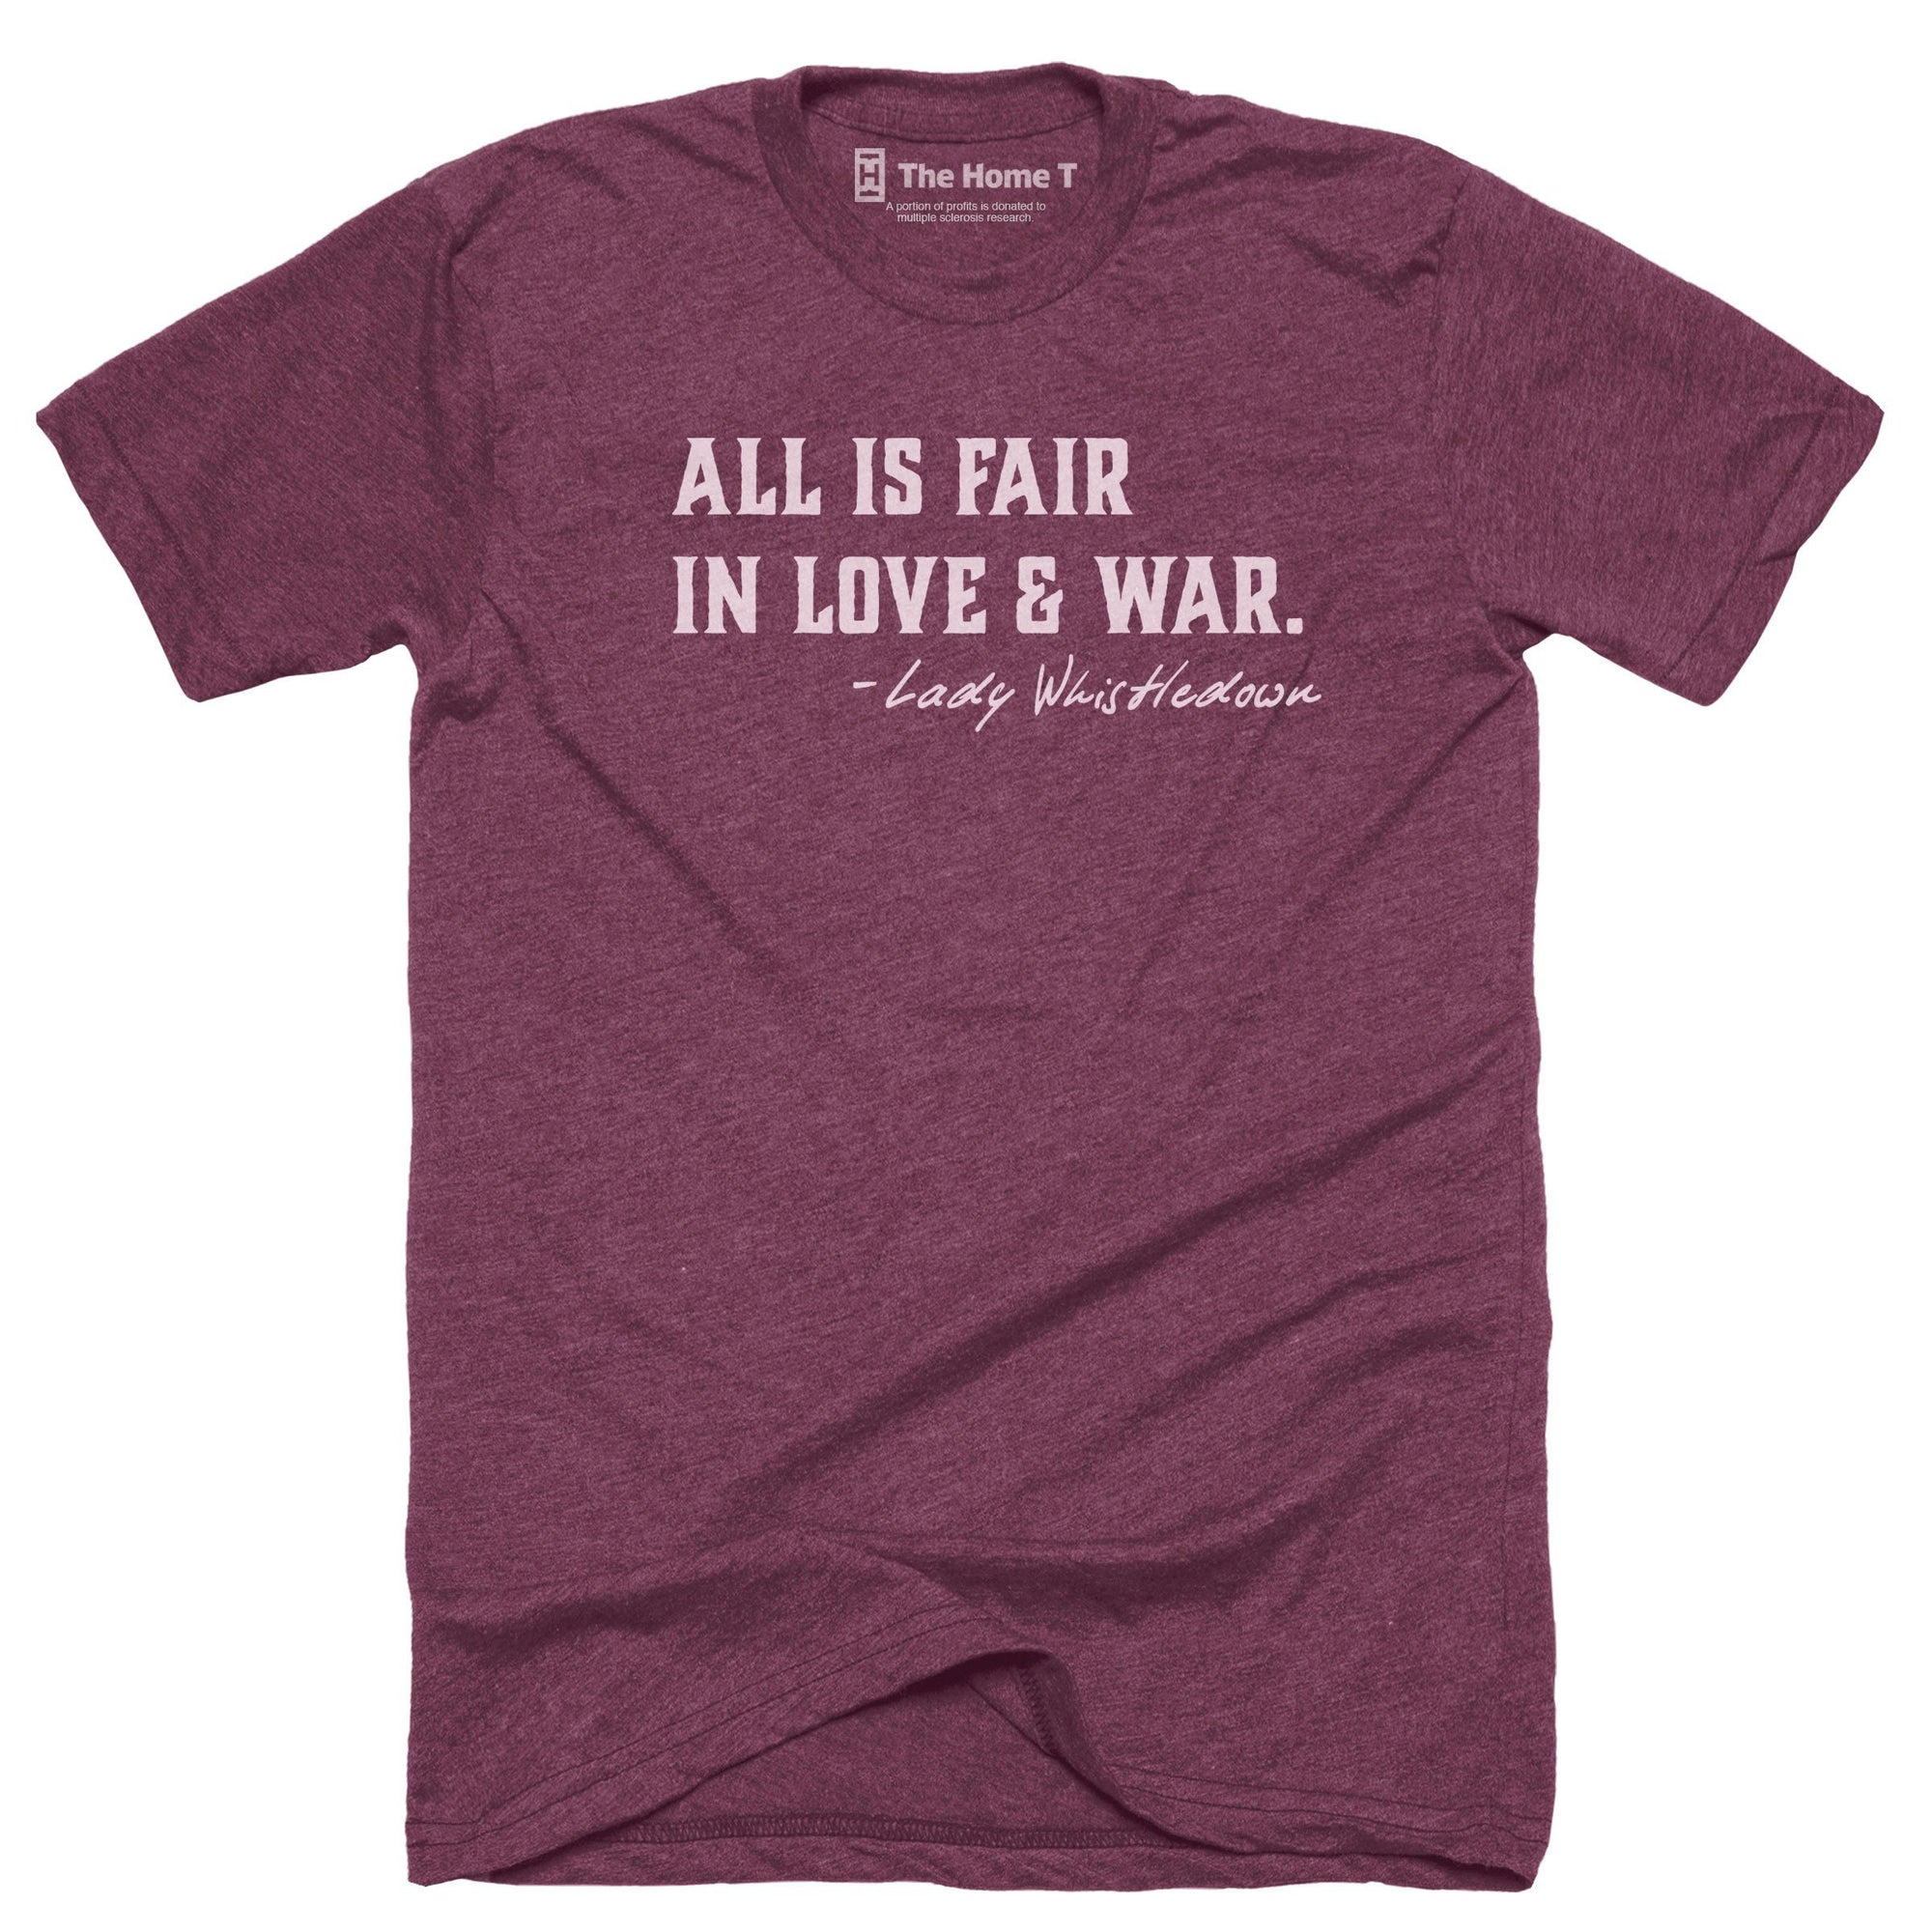 All is fair in love and war. Maroon crewneck.